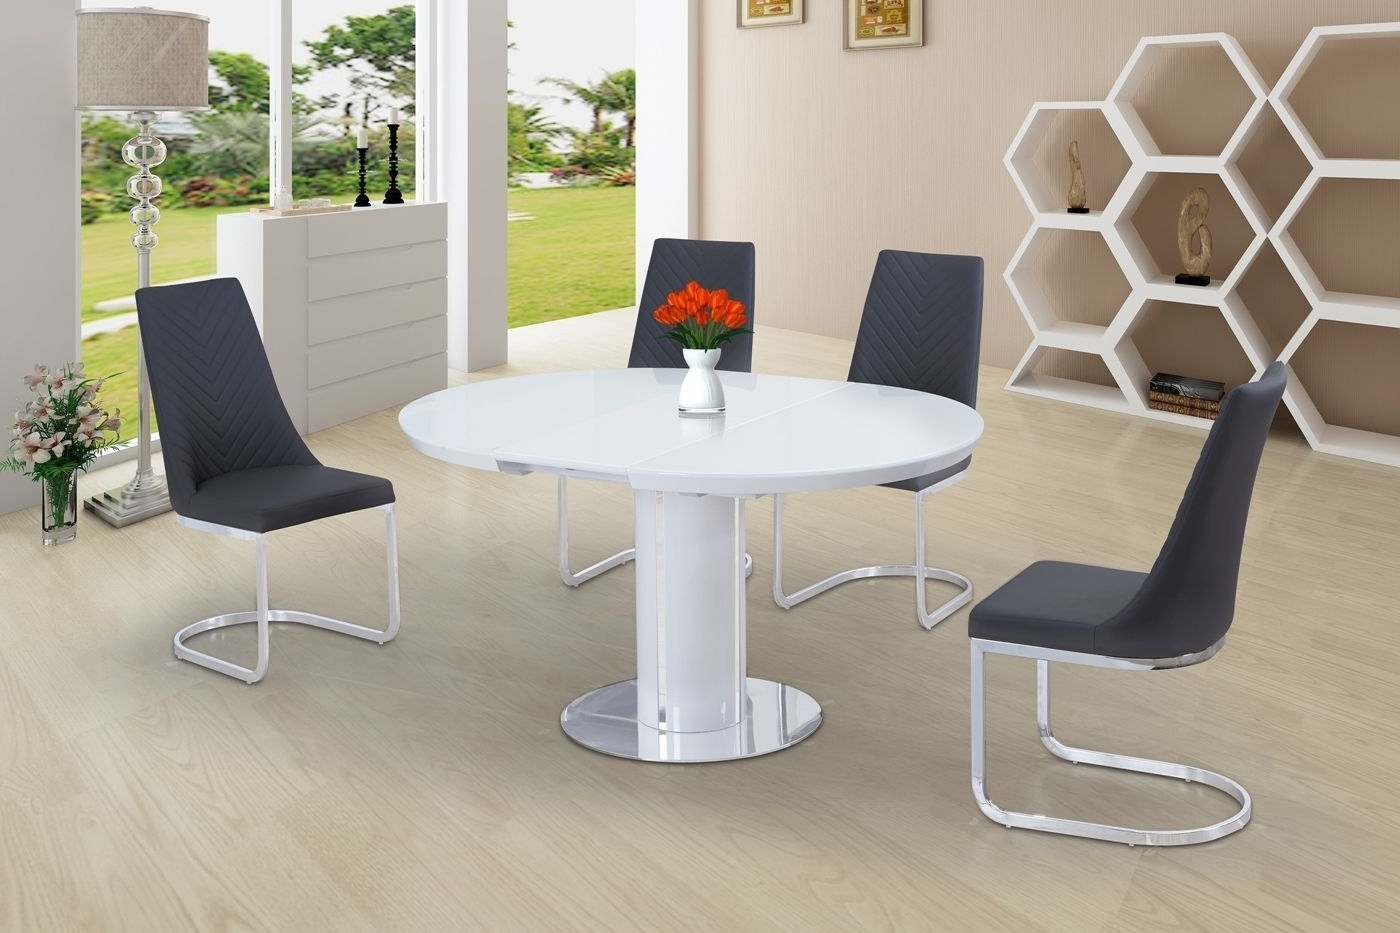 Fashionable Eclipse Round Oval Gloss & Glass Extending 110 To 145 Cm Dining Within Round Dining Tables Extends To Oval (View 6 of 25)